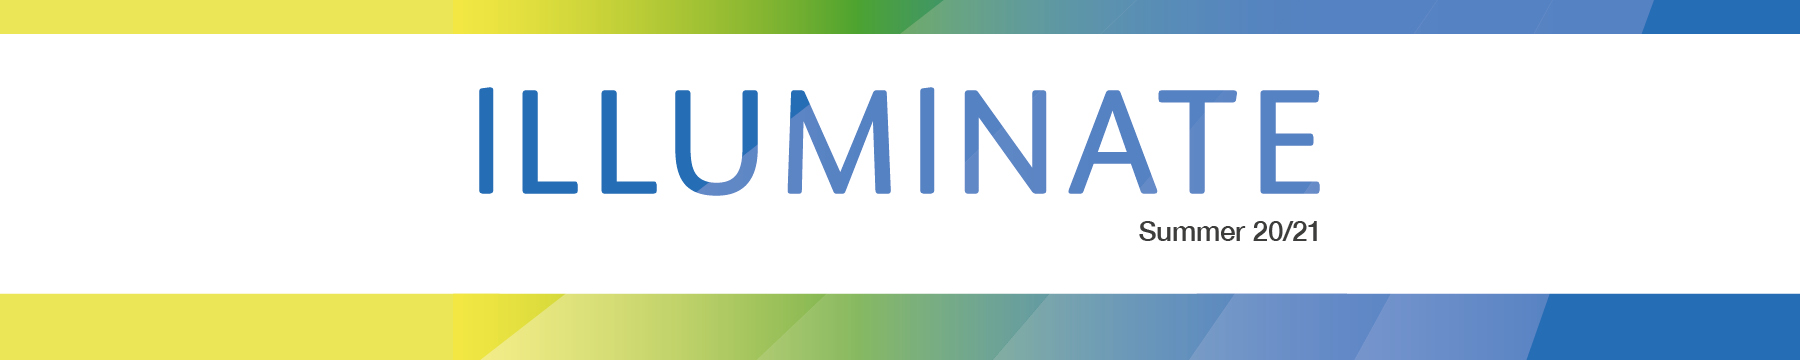 Illuminate newsletter header, Summer 2020-21